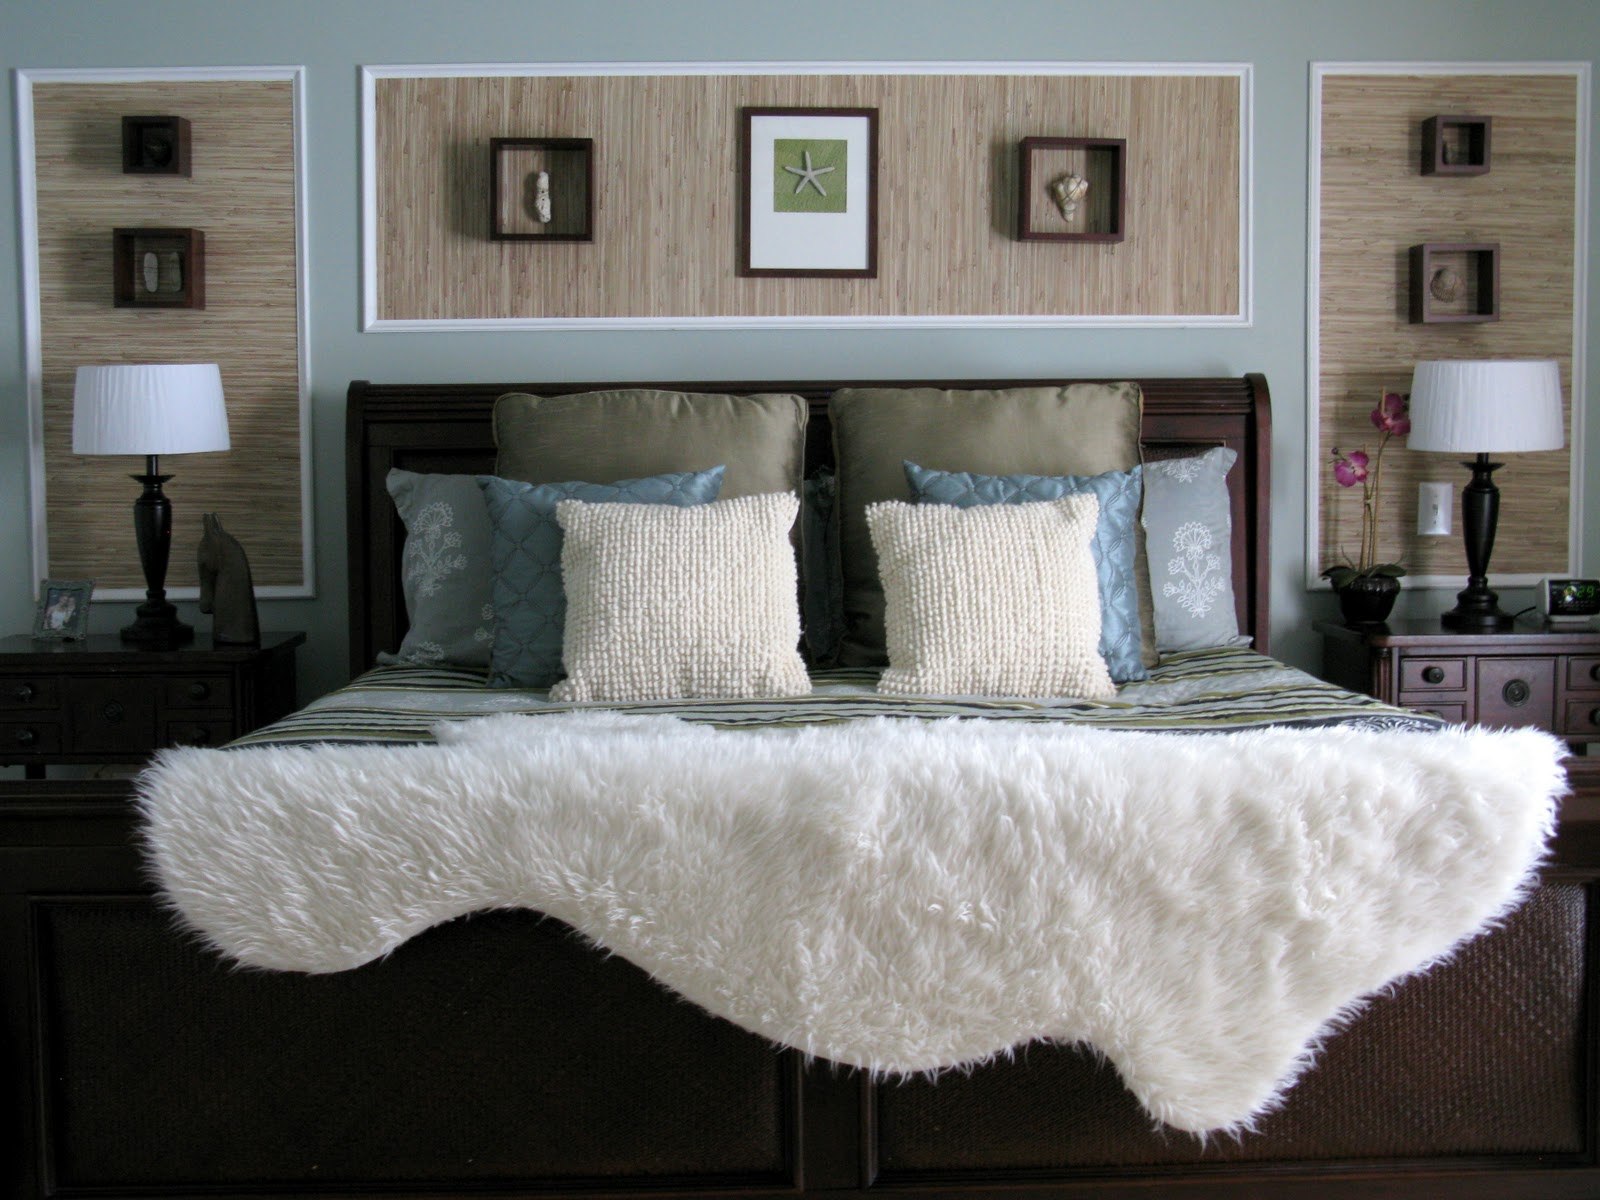 Home design houzz bedrooms Master bedroom ideas houzz